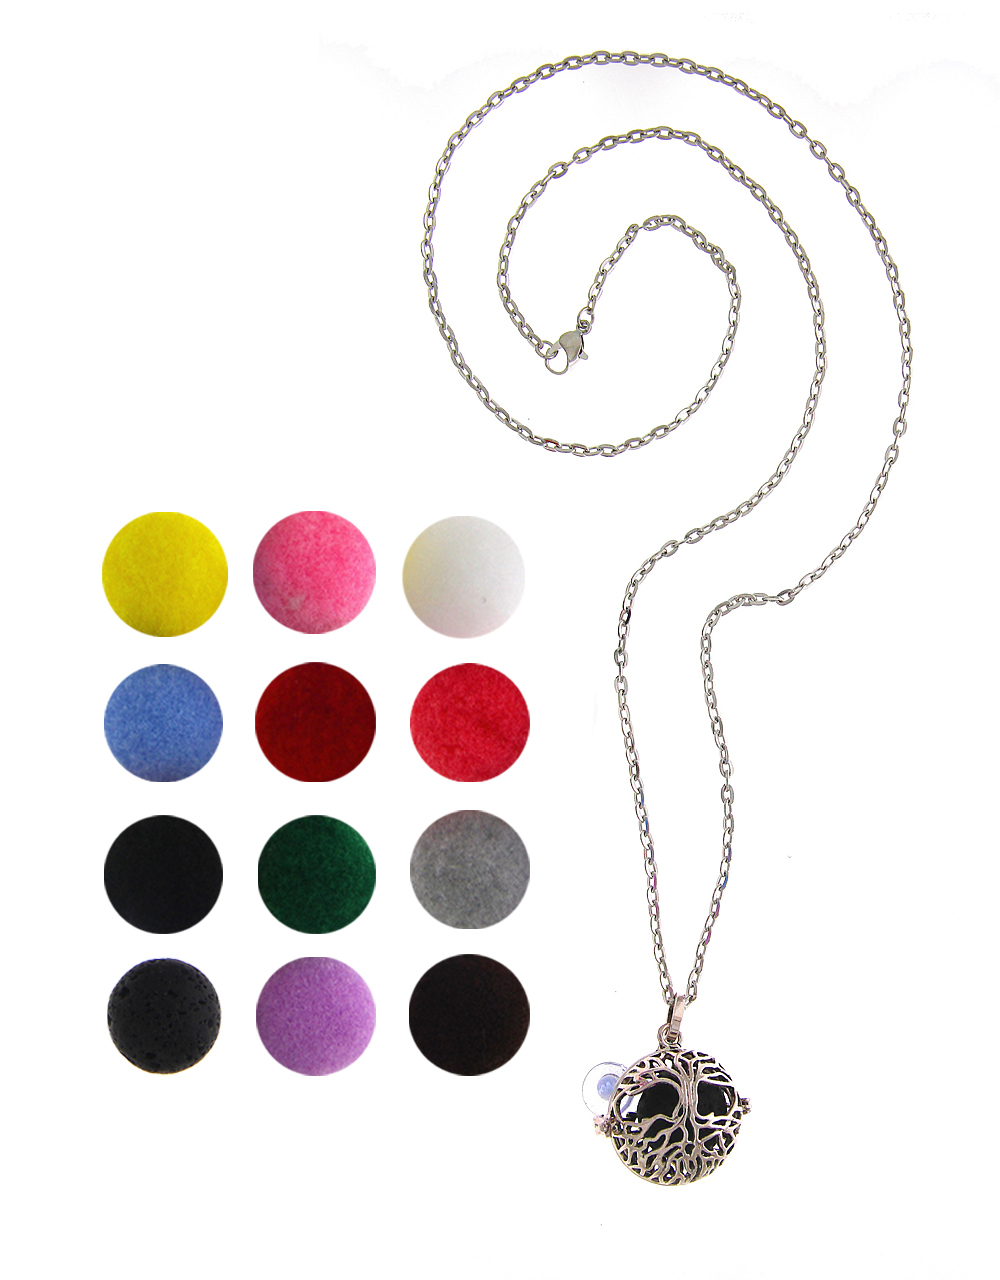 Silver Finish Fashionable Changeable Pendant Jewellery